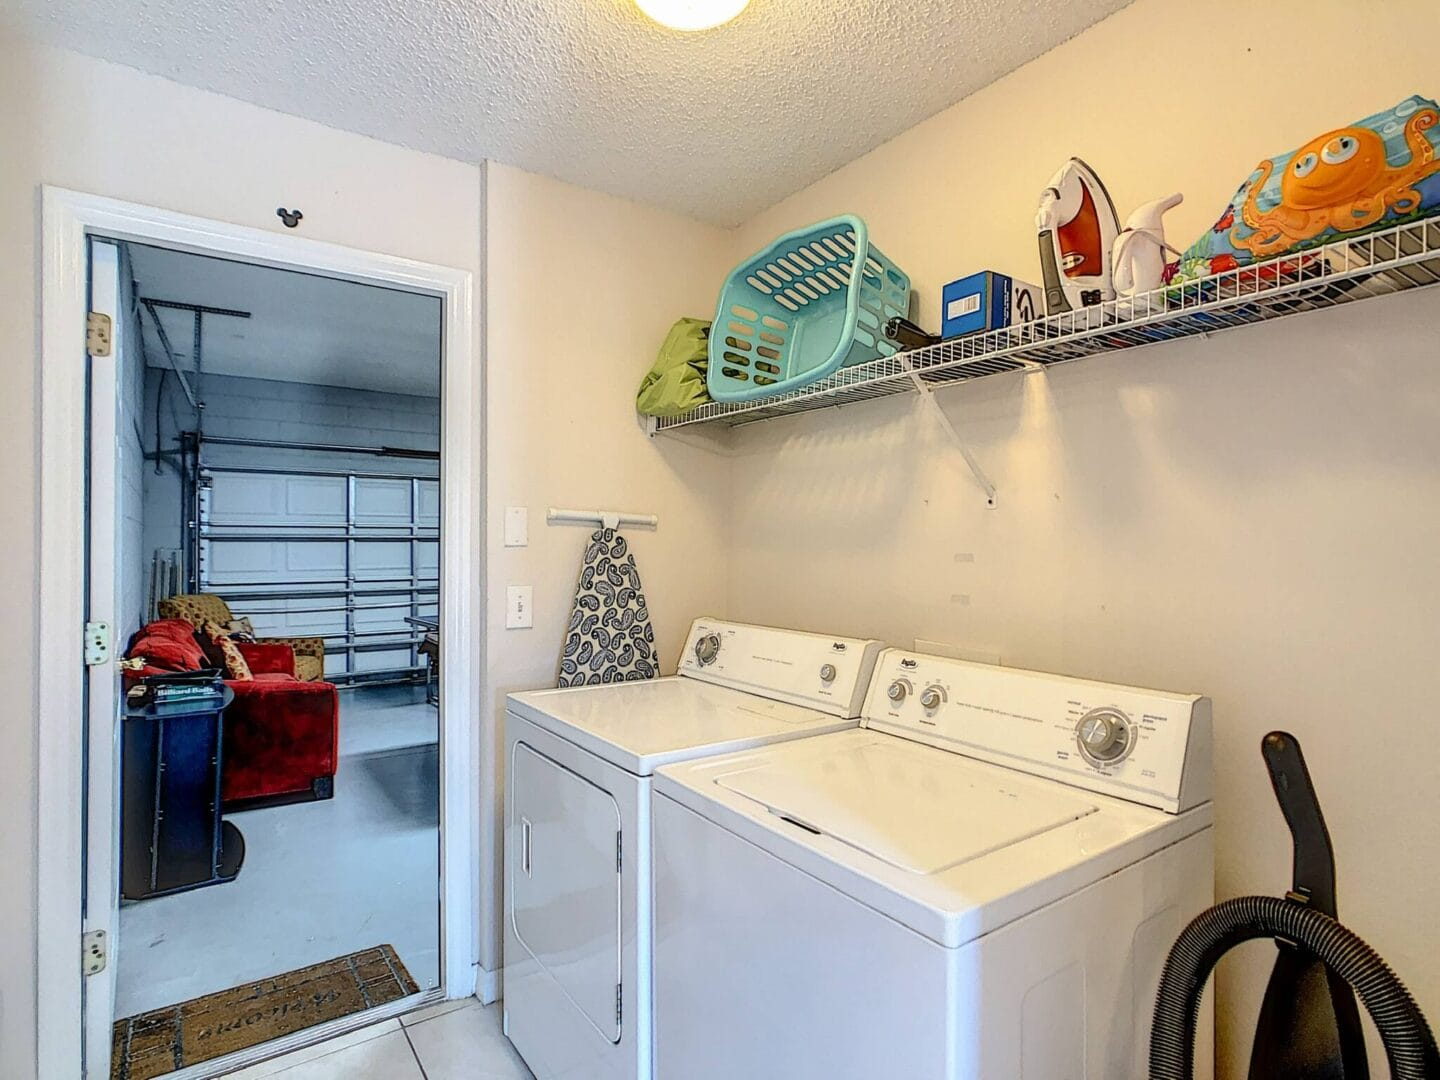 laundry room for guests staying at vacation rental home in Orlando florida near Disney World theme parks